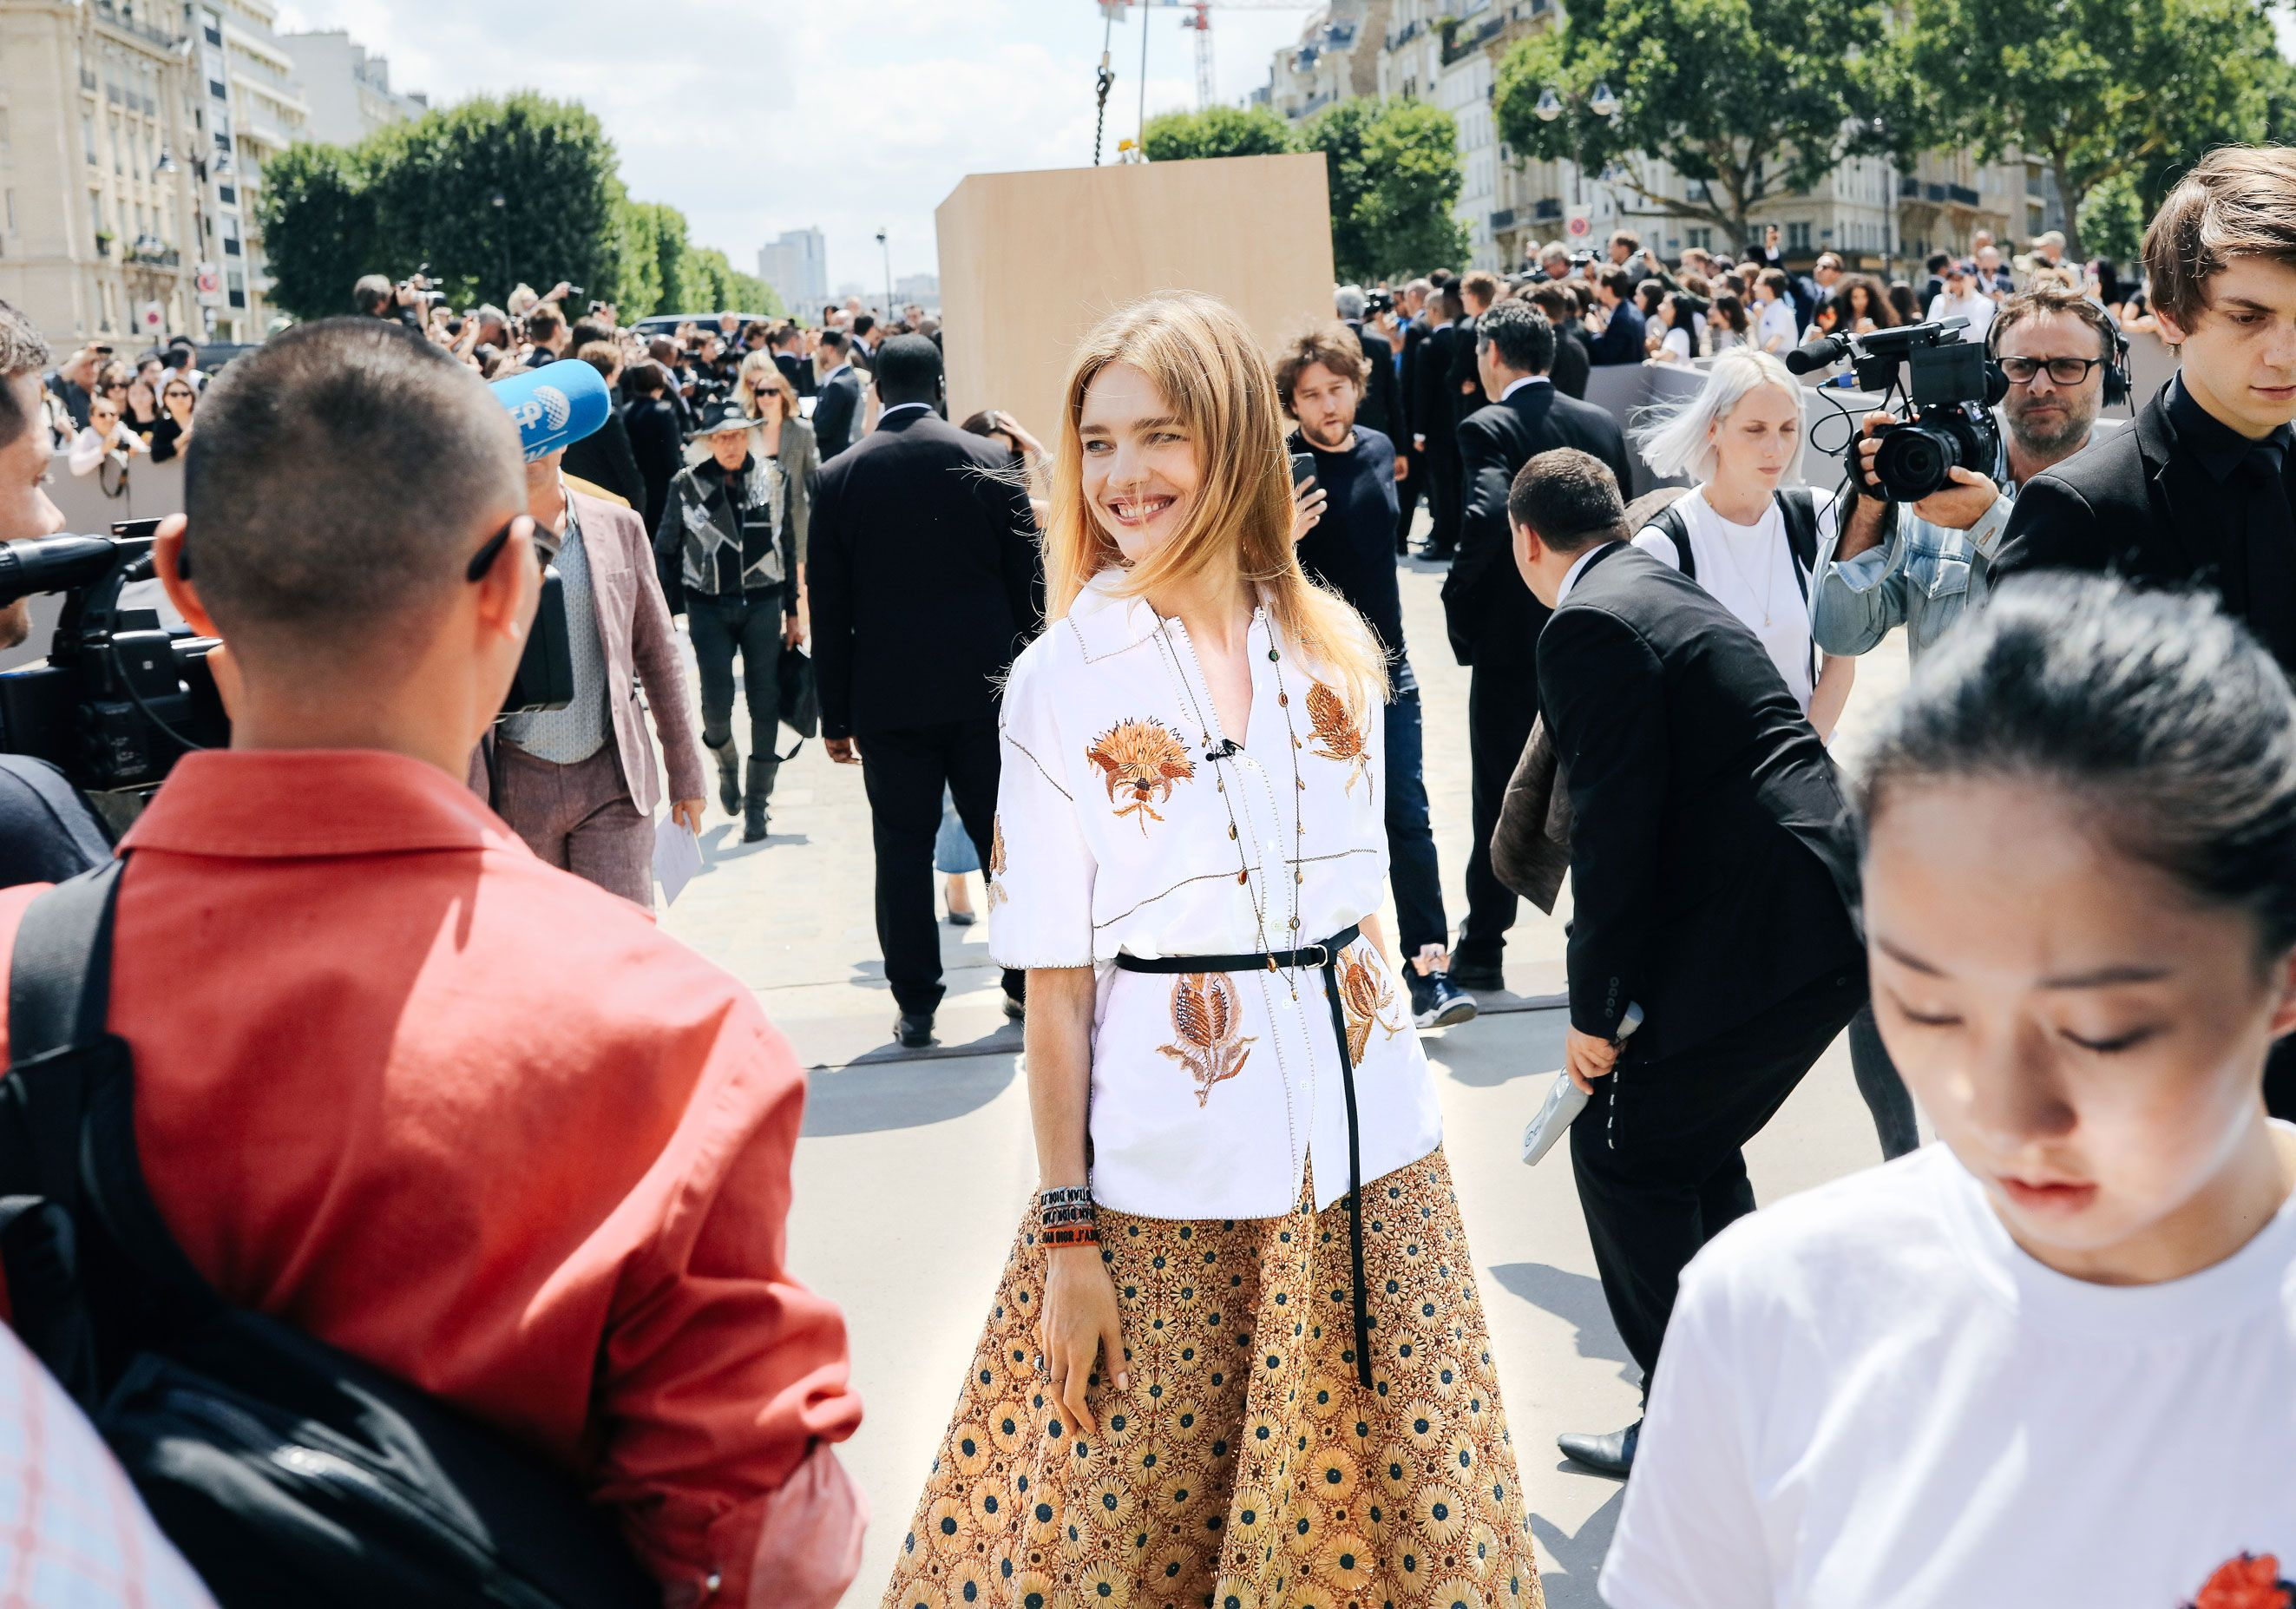 Phil ohus best street style looks from the fall u couture shows in